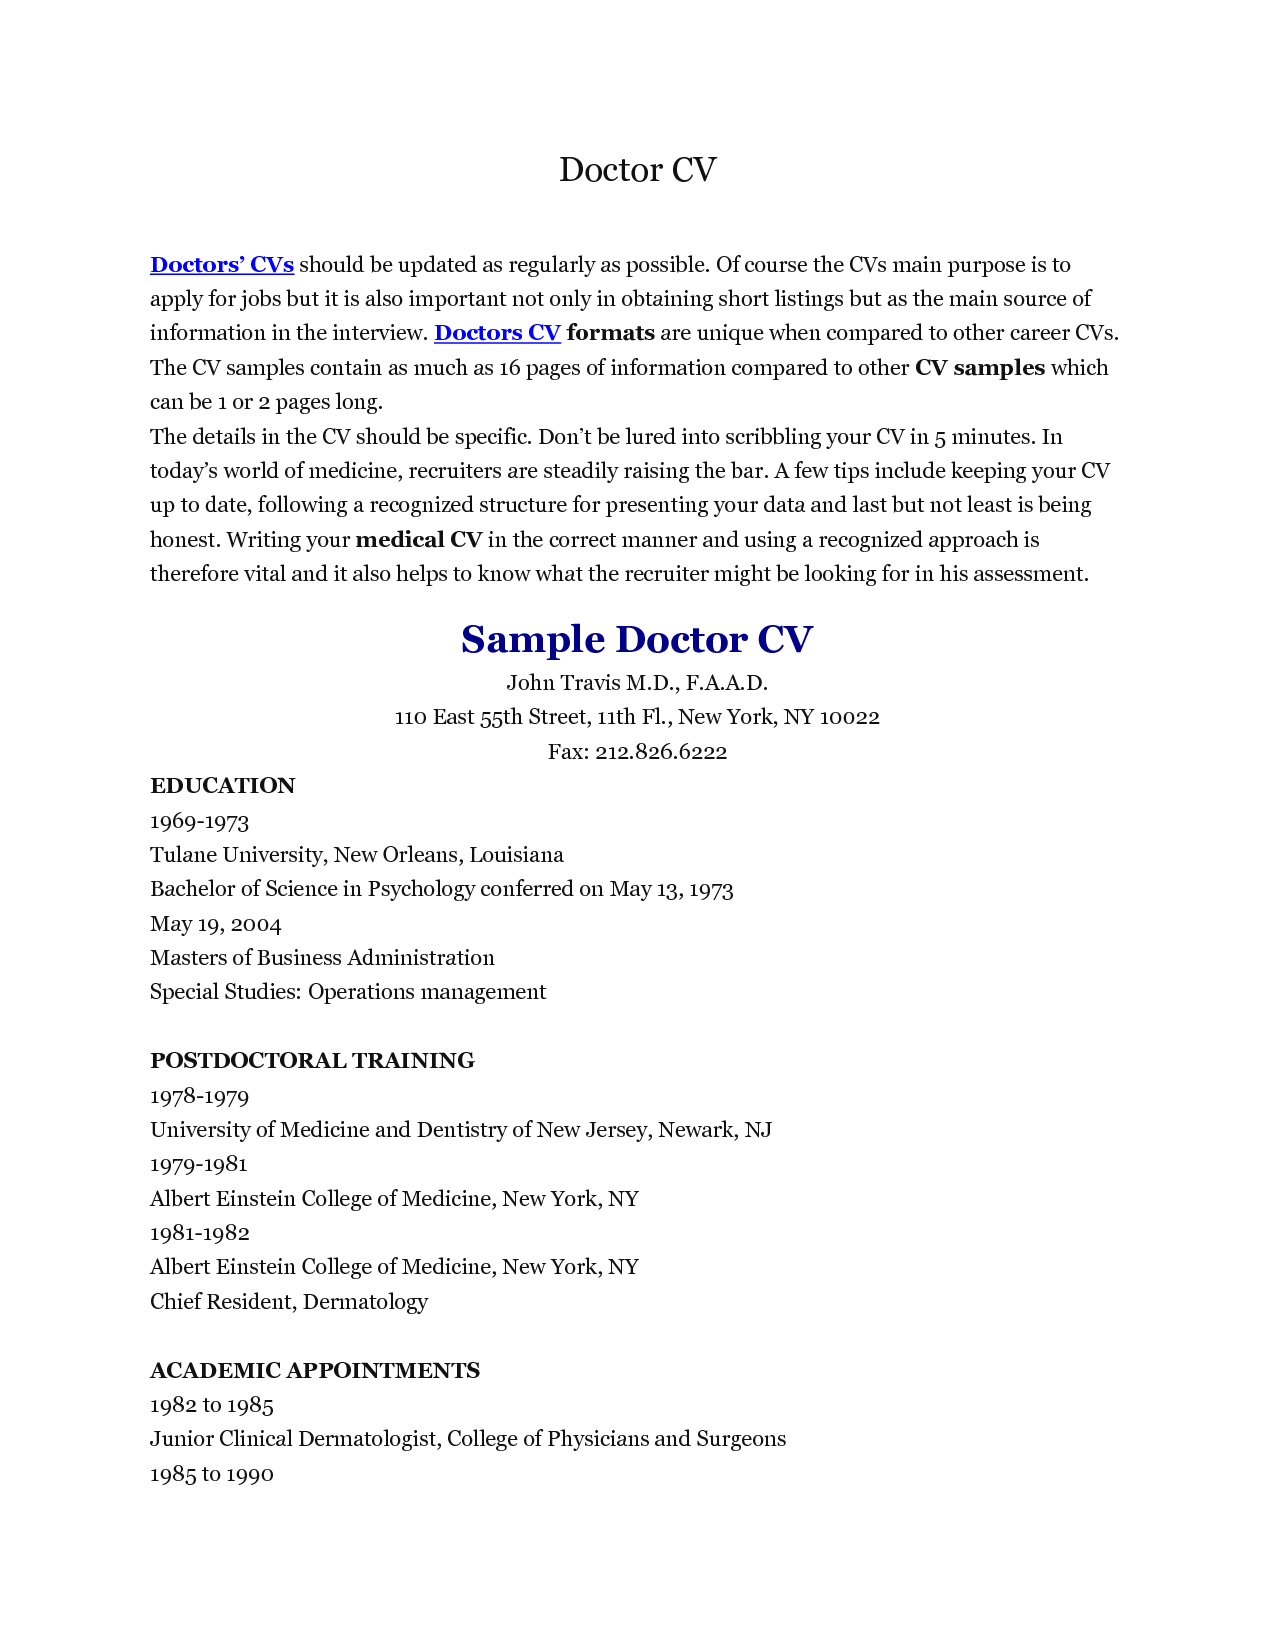 Samples Of Curriculum Vitae Medical Doctor Curriculum Vitae Example  Httpwwwresumecareer